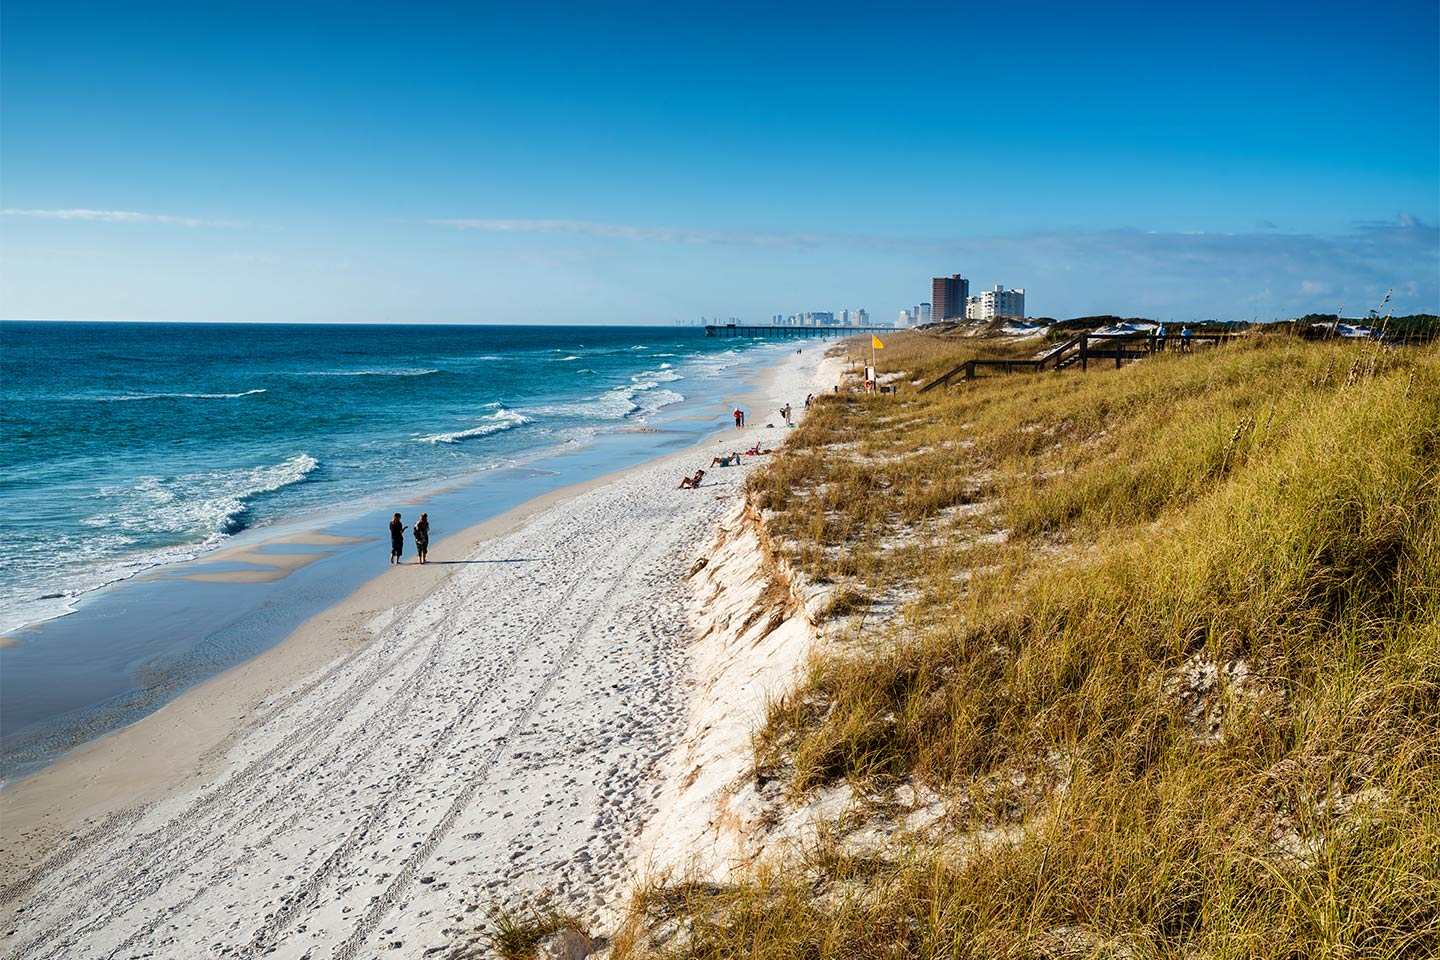 An view of the coastline looking towards downtown Panama City Beach